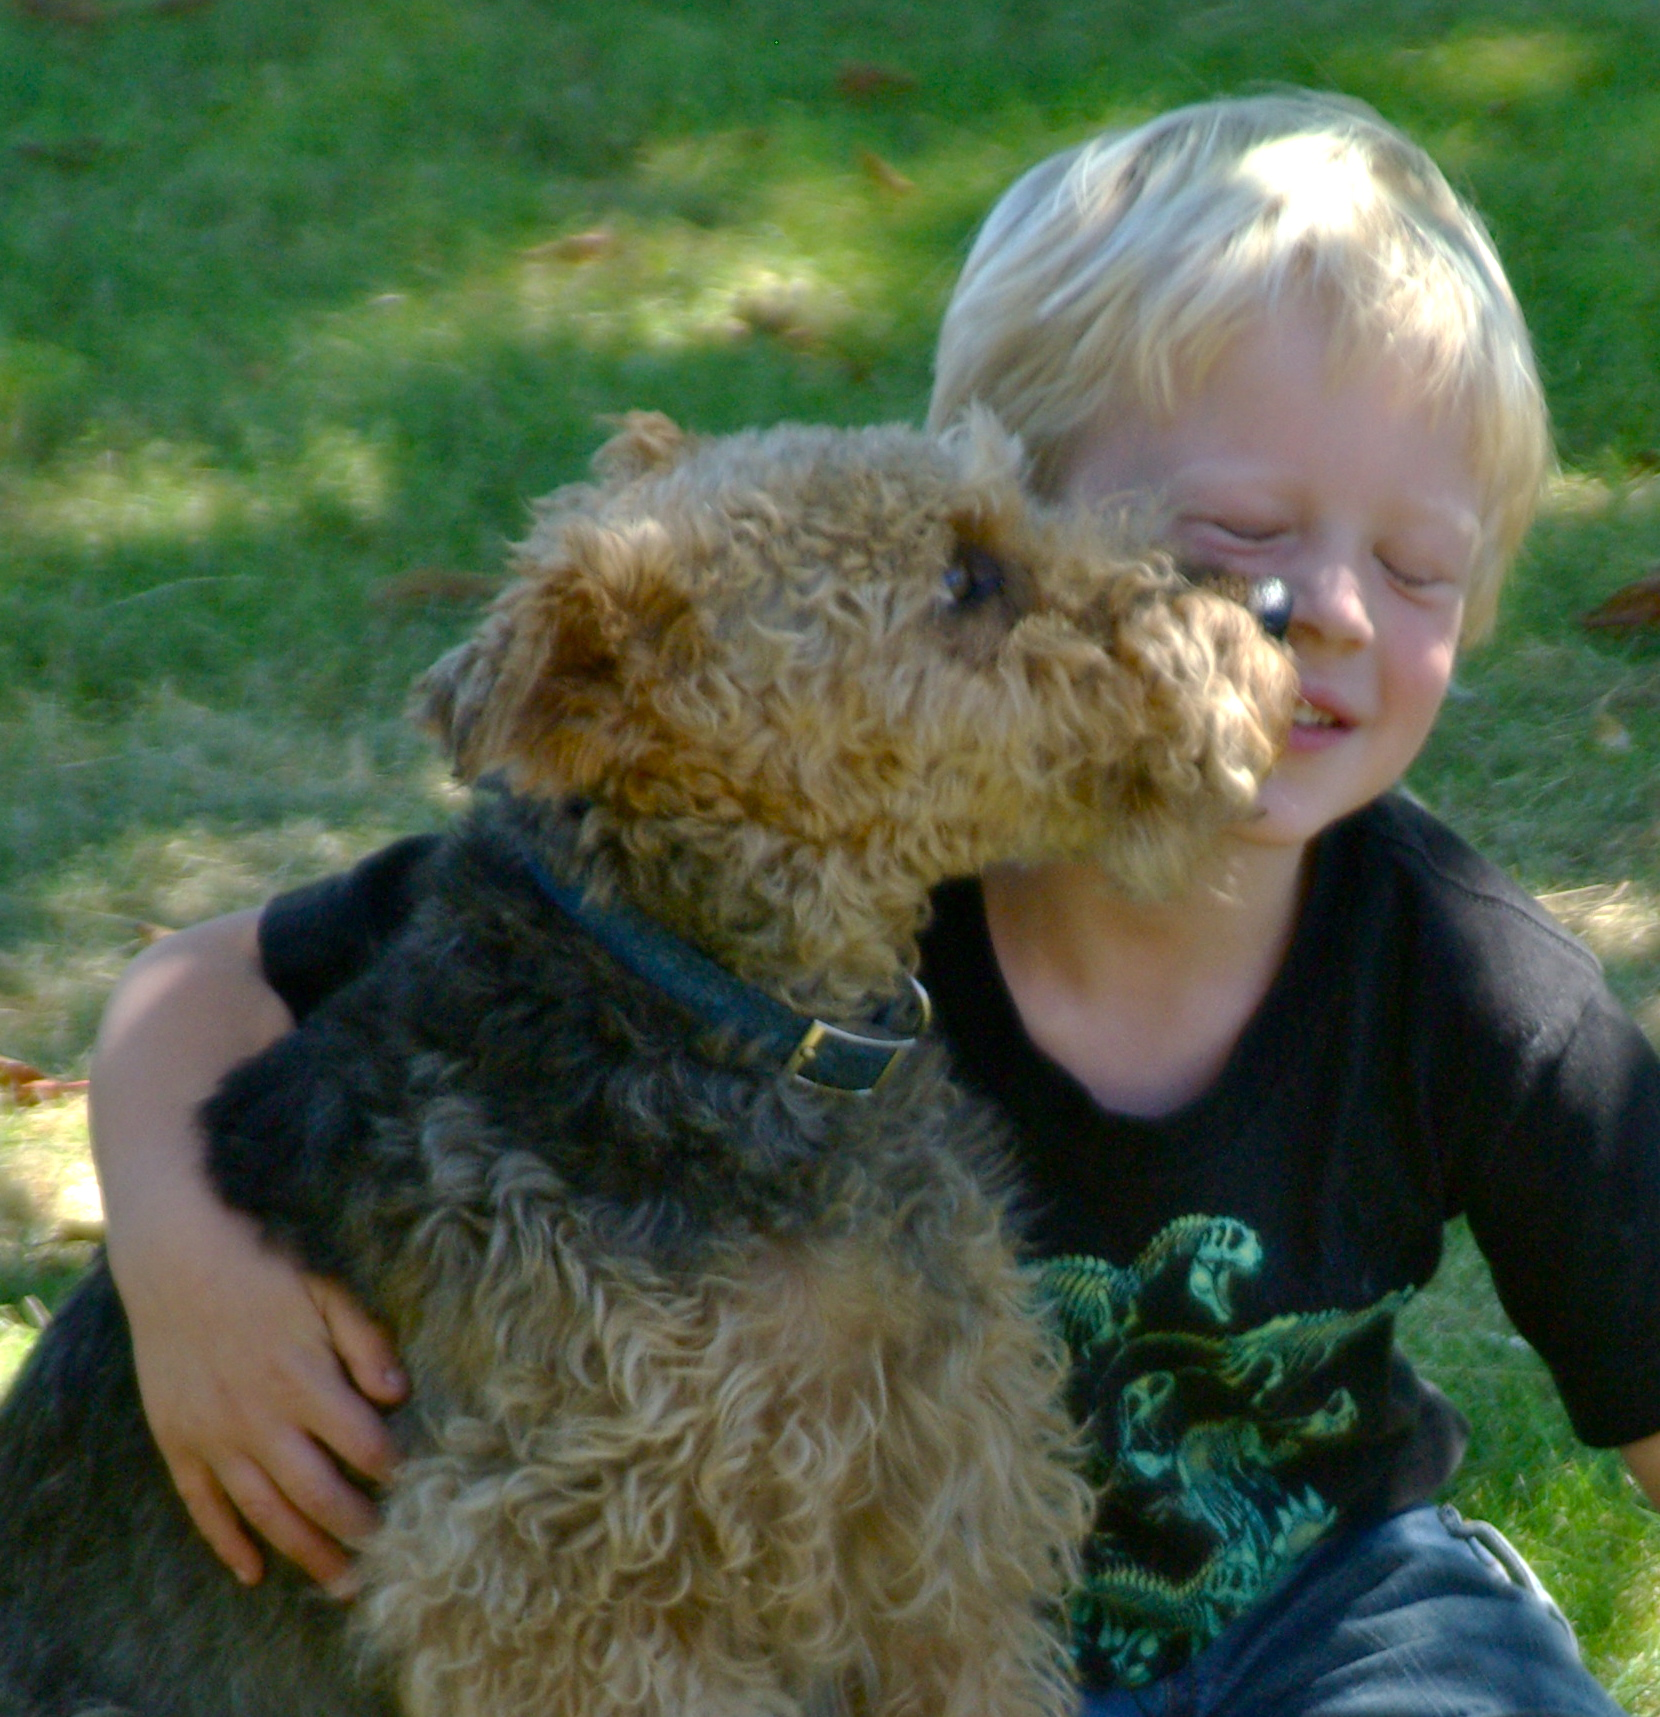 Sadie The Welsh Terrier and friend, Adam